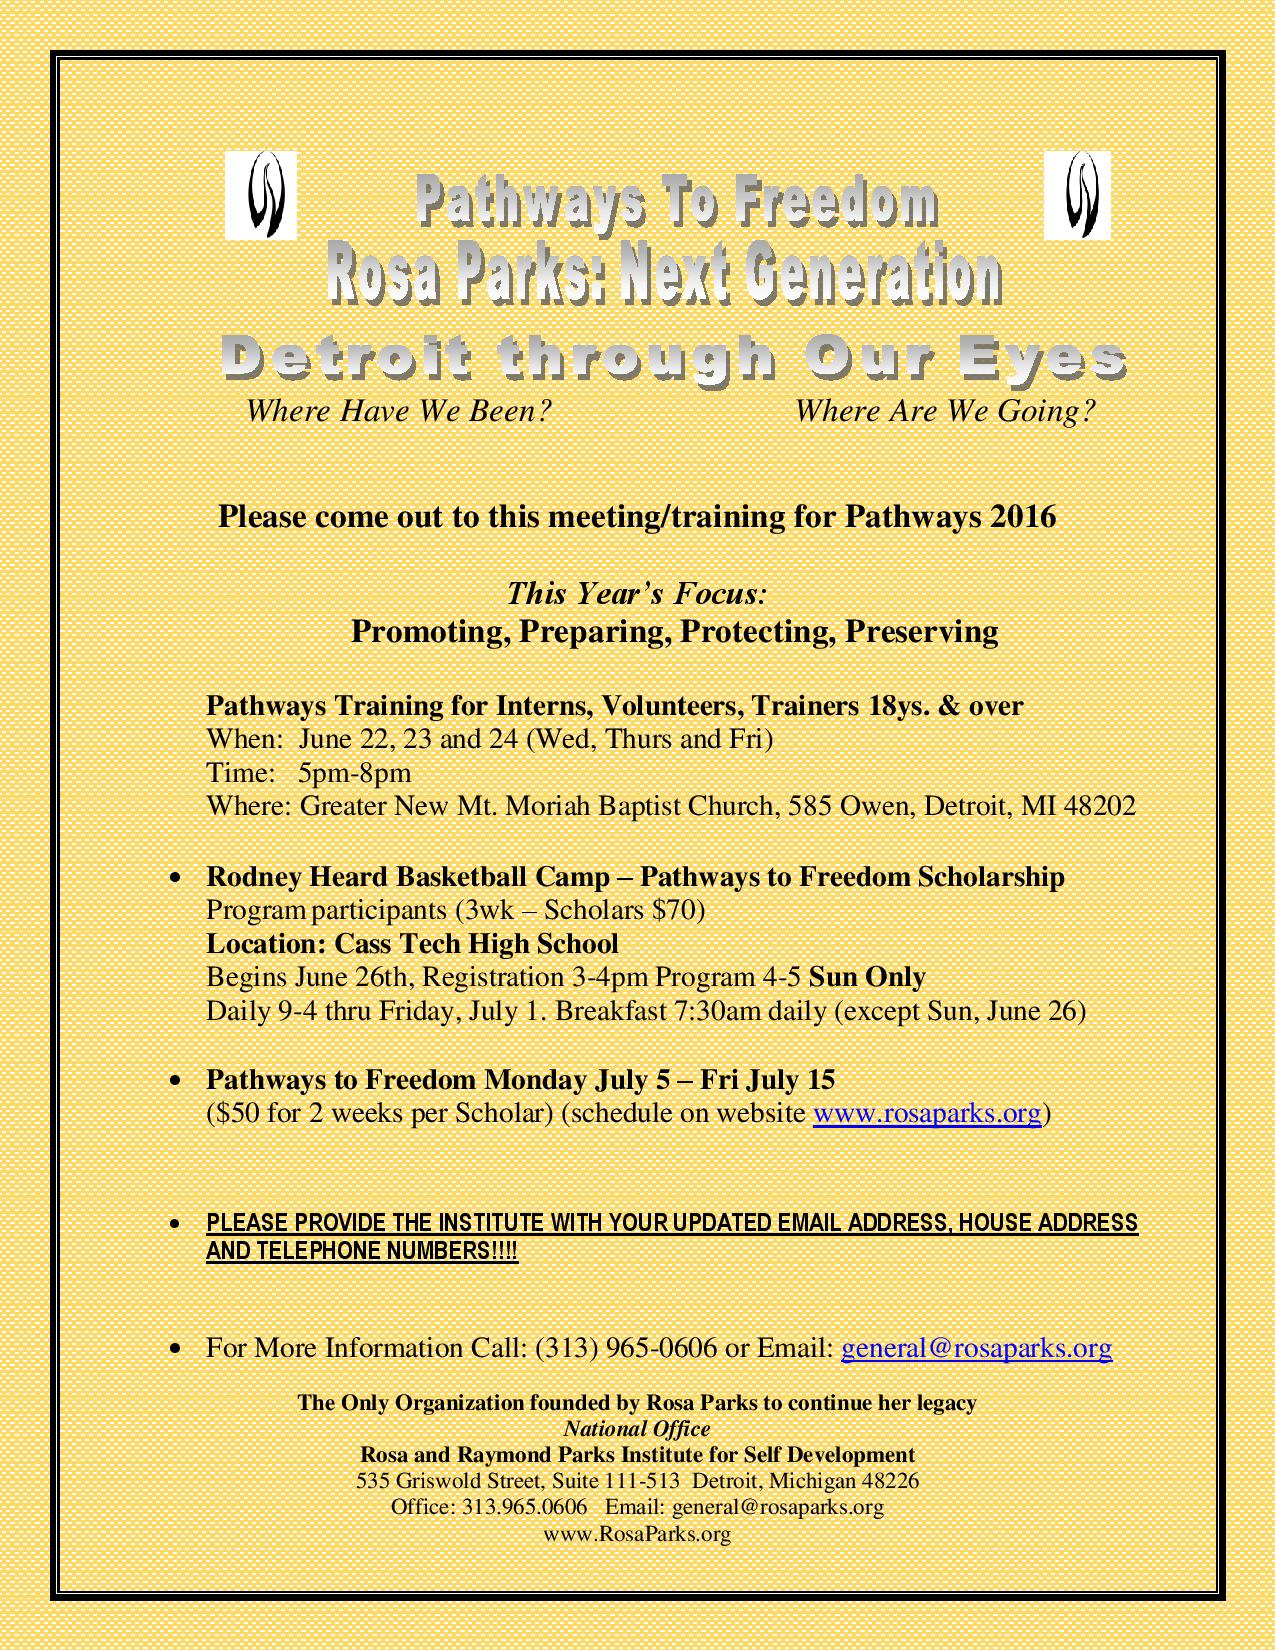 06-08-16-PWF 2016 Meeting Training Flyer II